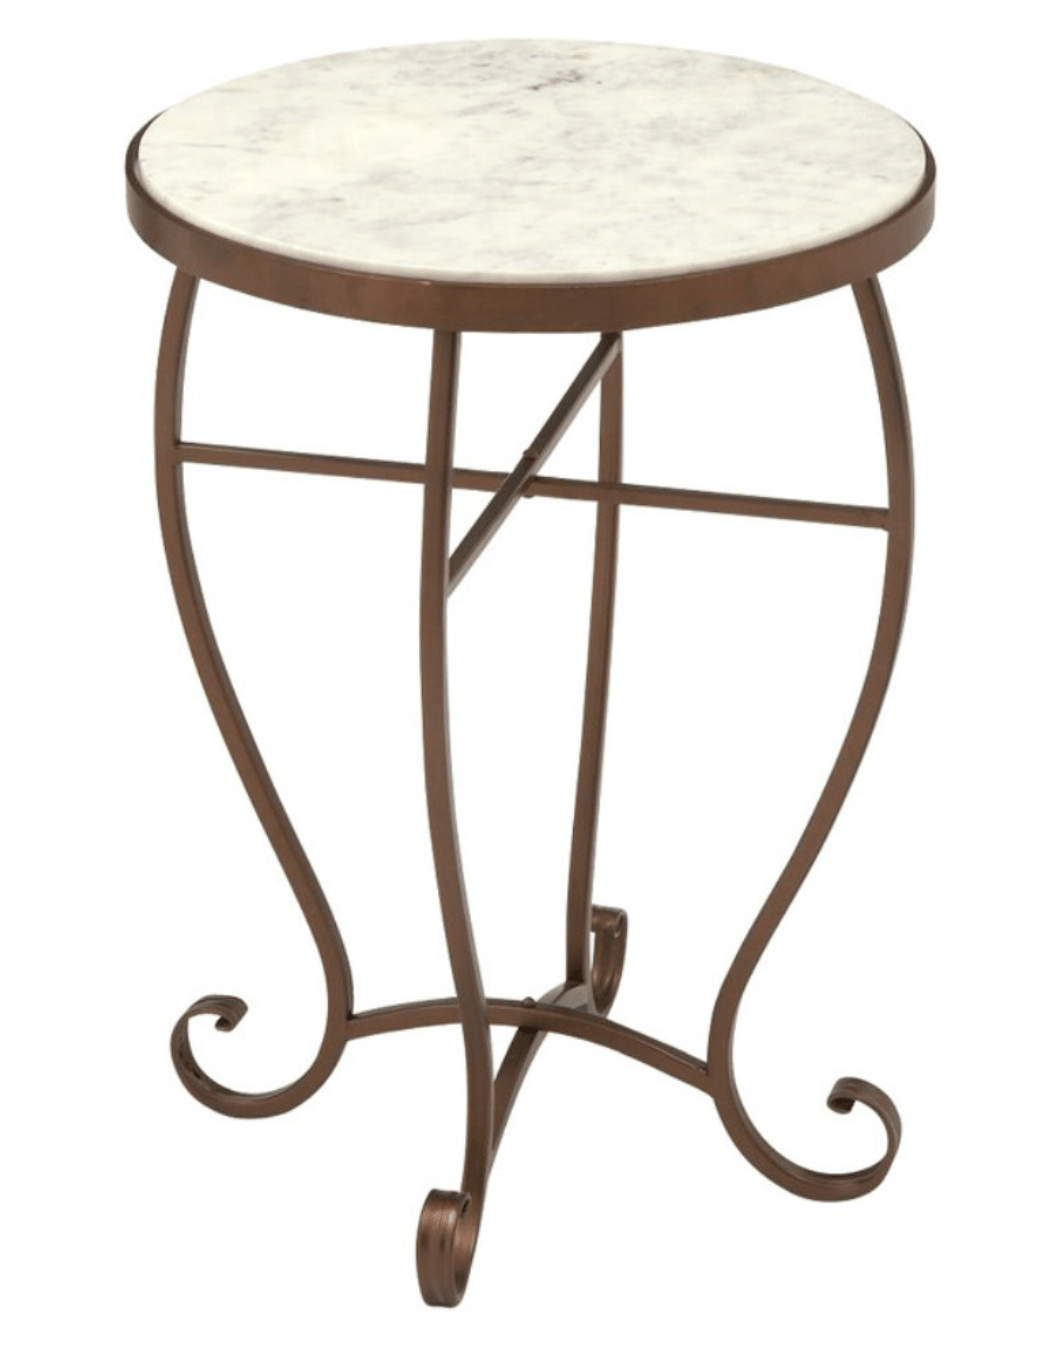 lovely small accent table for compact marble round min top glass nesting tables tiffany style butterfly lamp teak dining chairs black patio ethan allen used furniture concrete